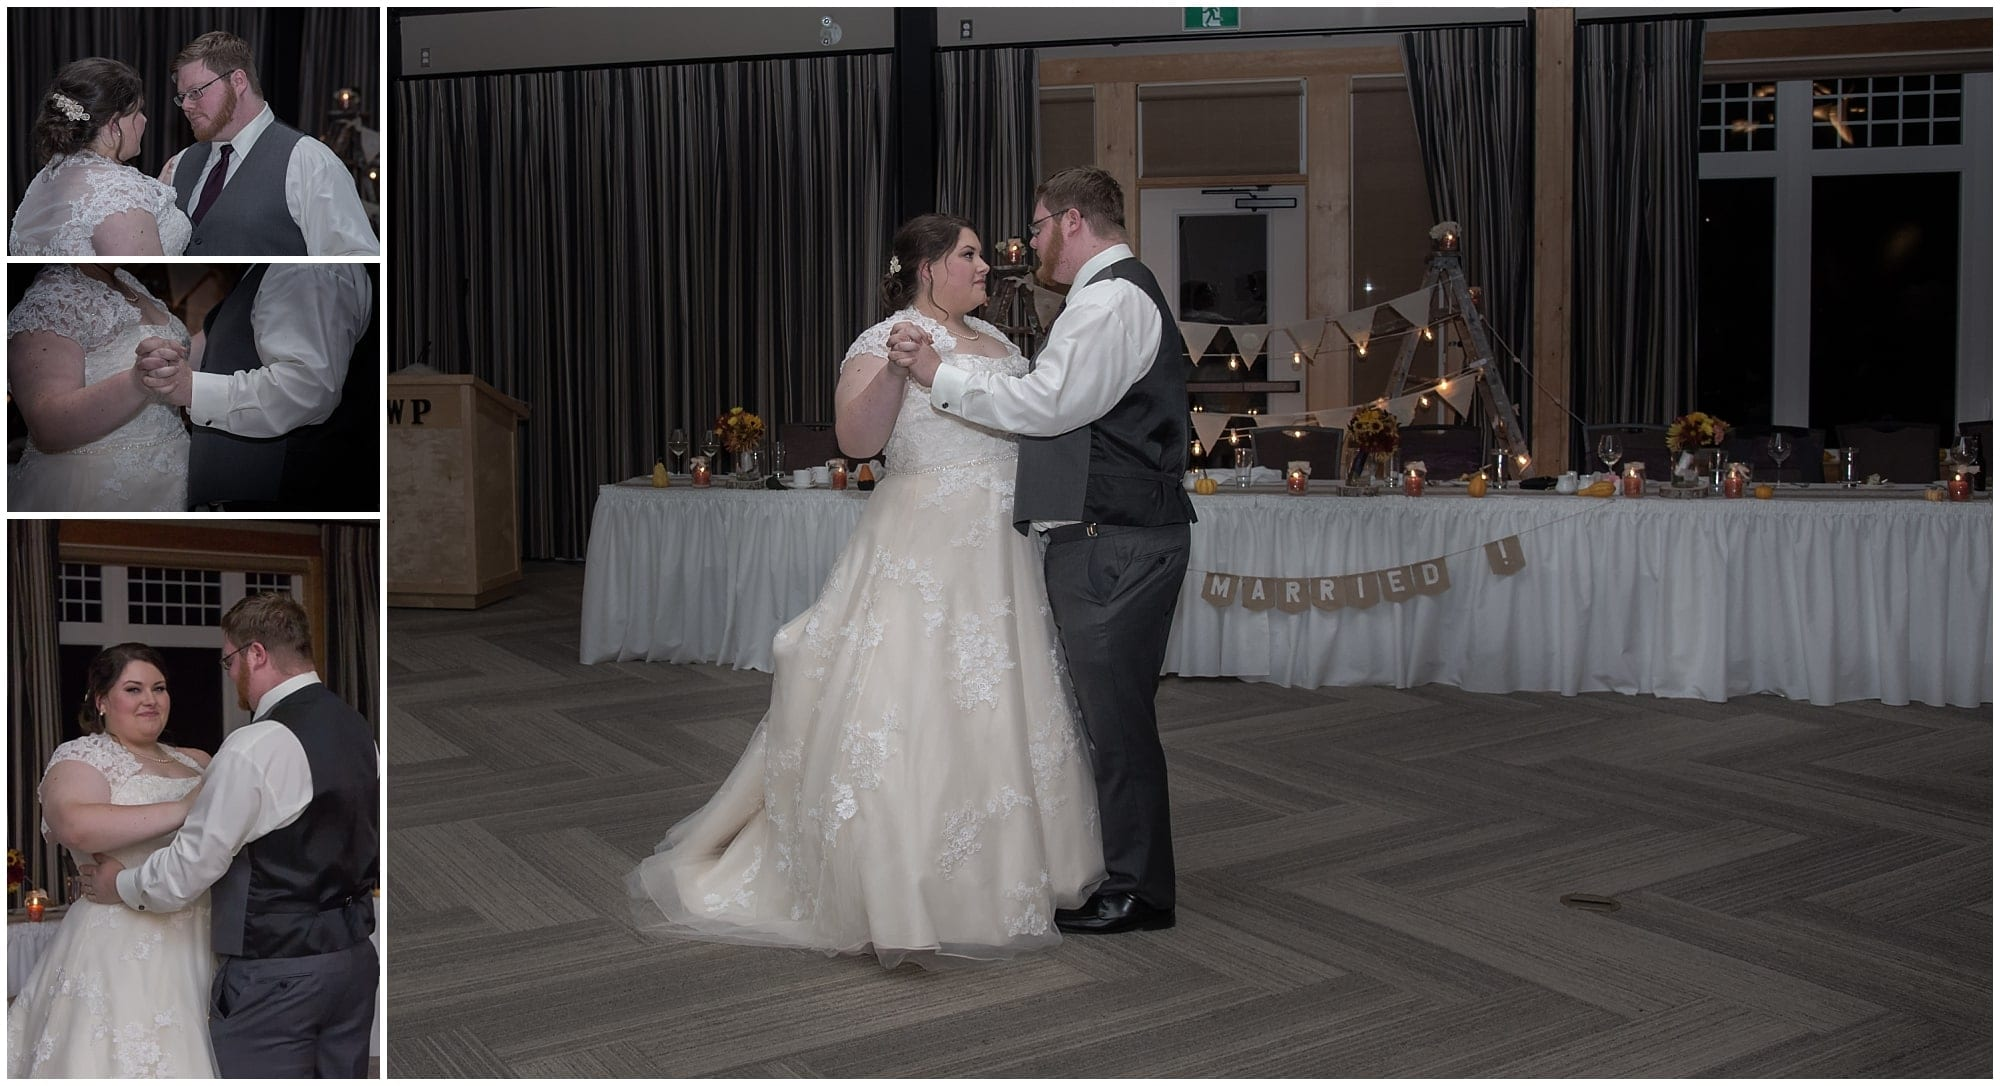 The bride and groom have their first wedding dance during their wedding at the White Point Beach Resort in Nova Scotia.